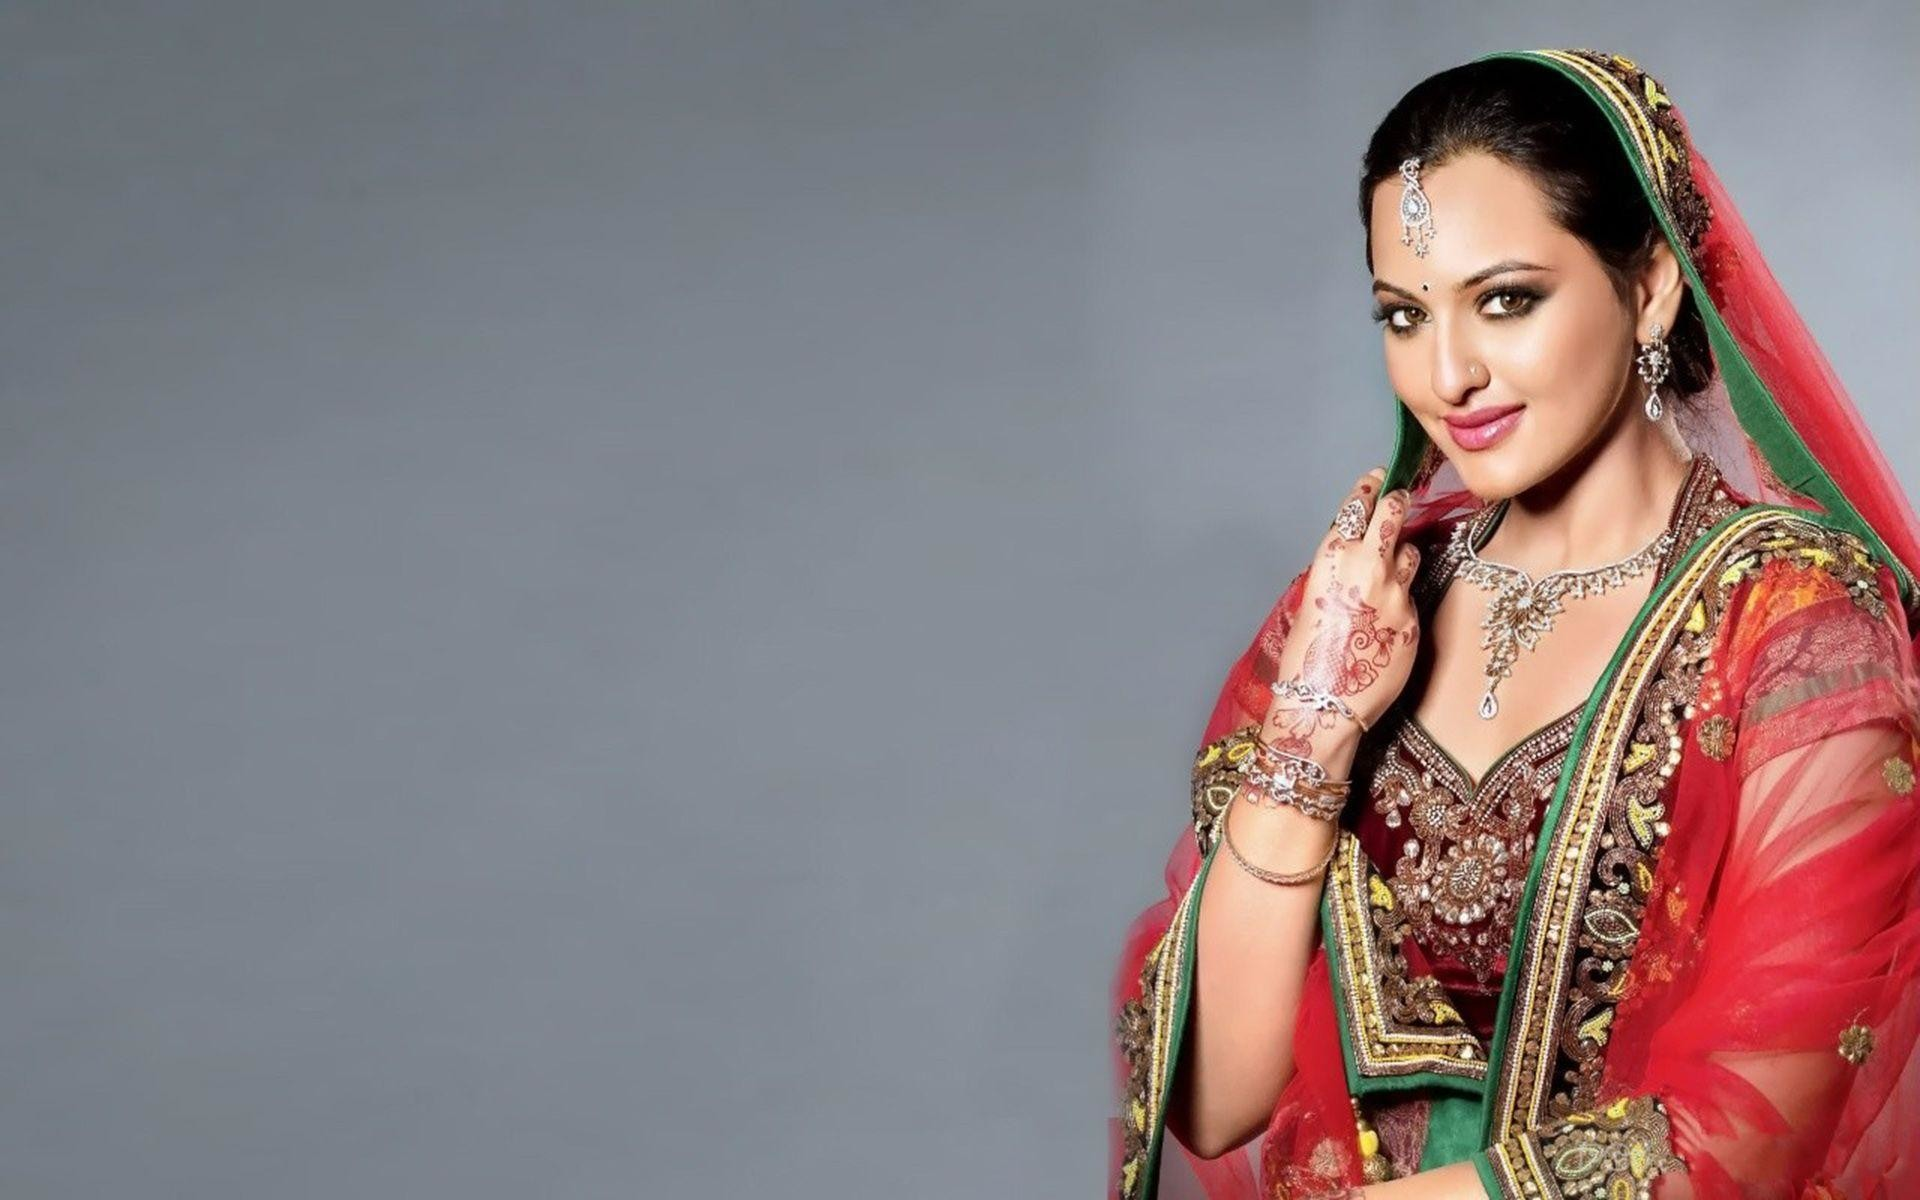 Bollywood Actress Hd Wallpapers: HD Wallpapers Of Bollywood Actress (68+ Images